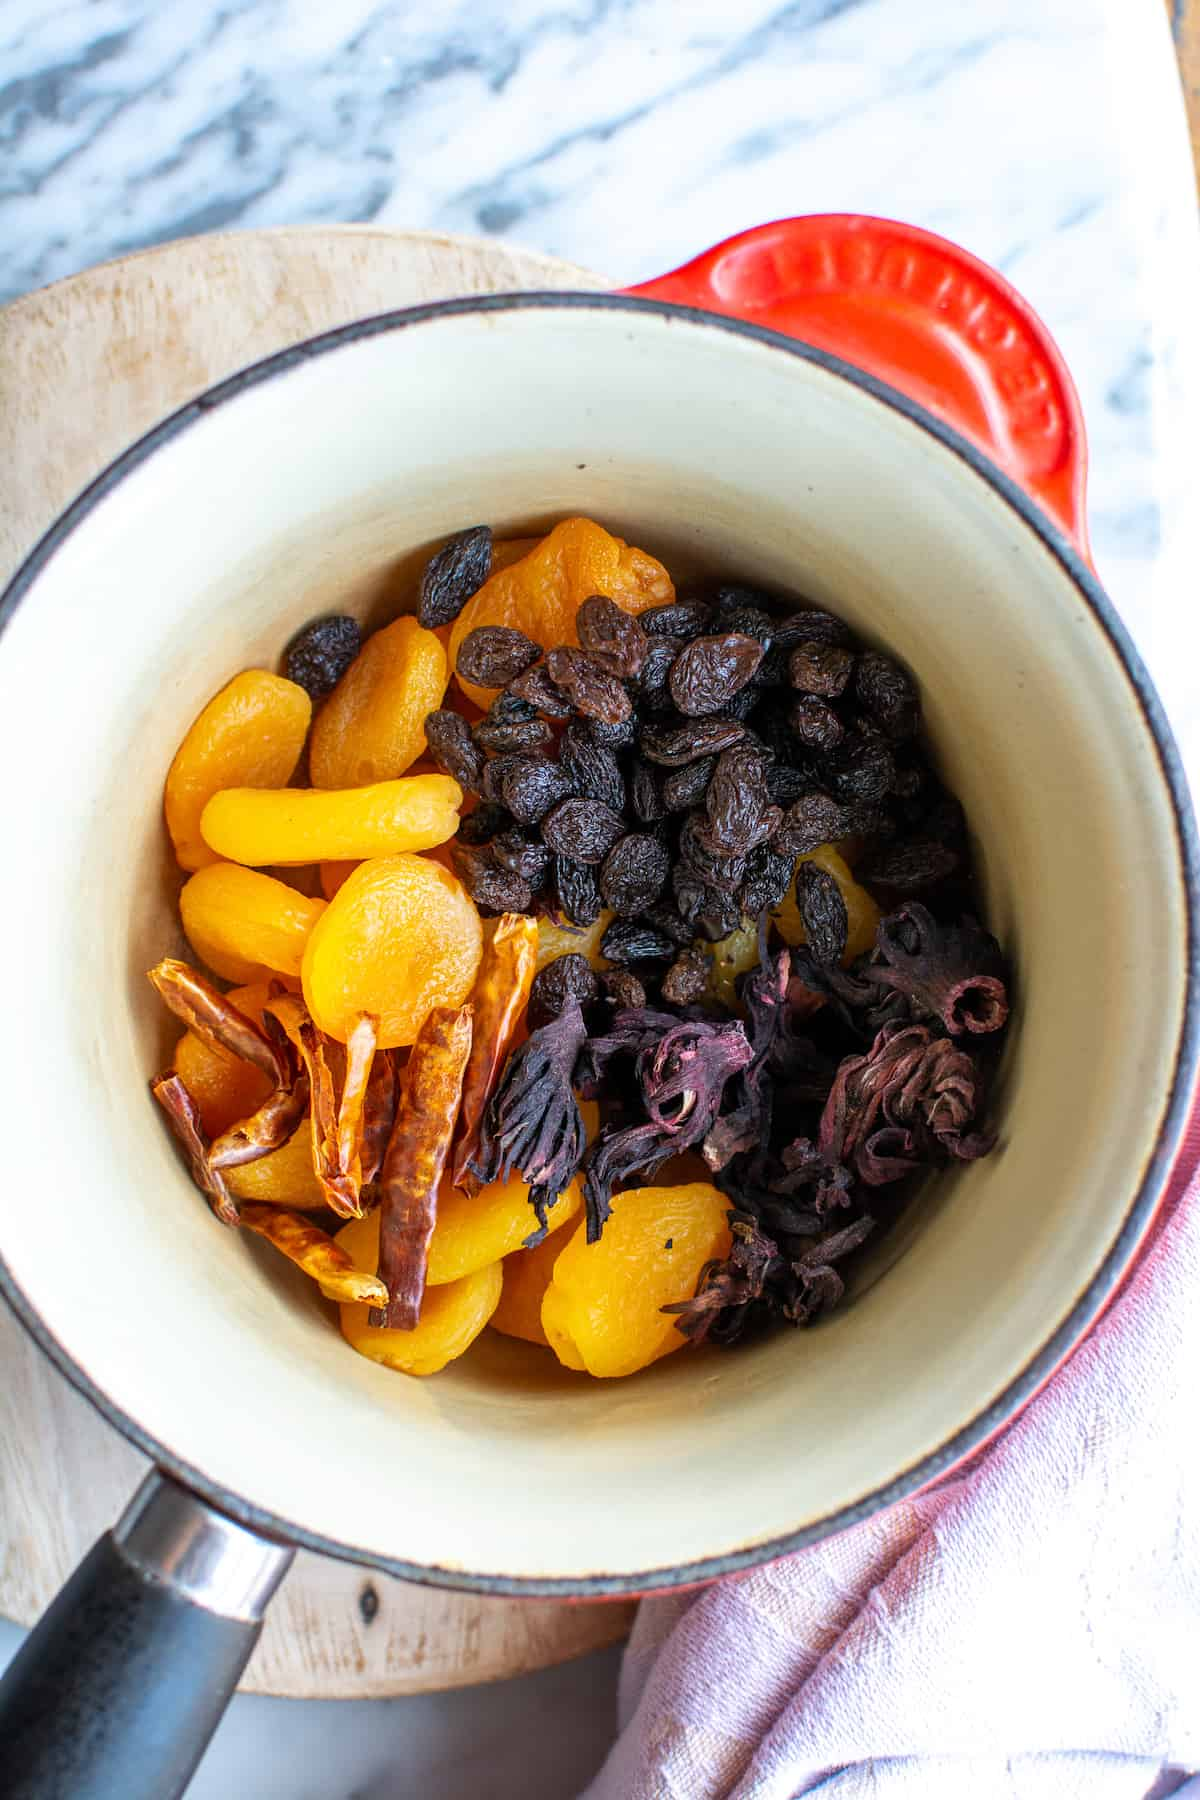 A saucepan filled with arbol chiles, dried apricots, hibiscus flowers, and raisins.